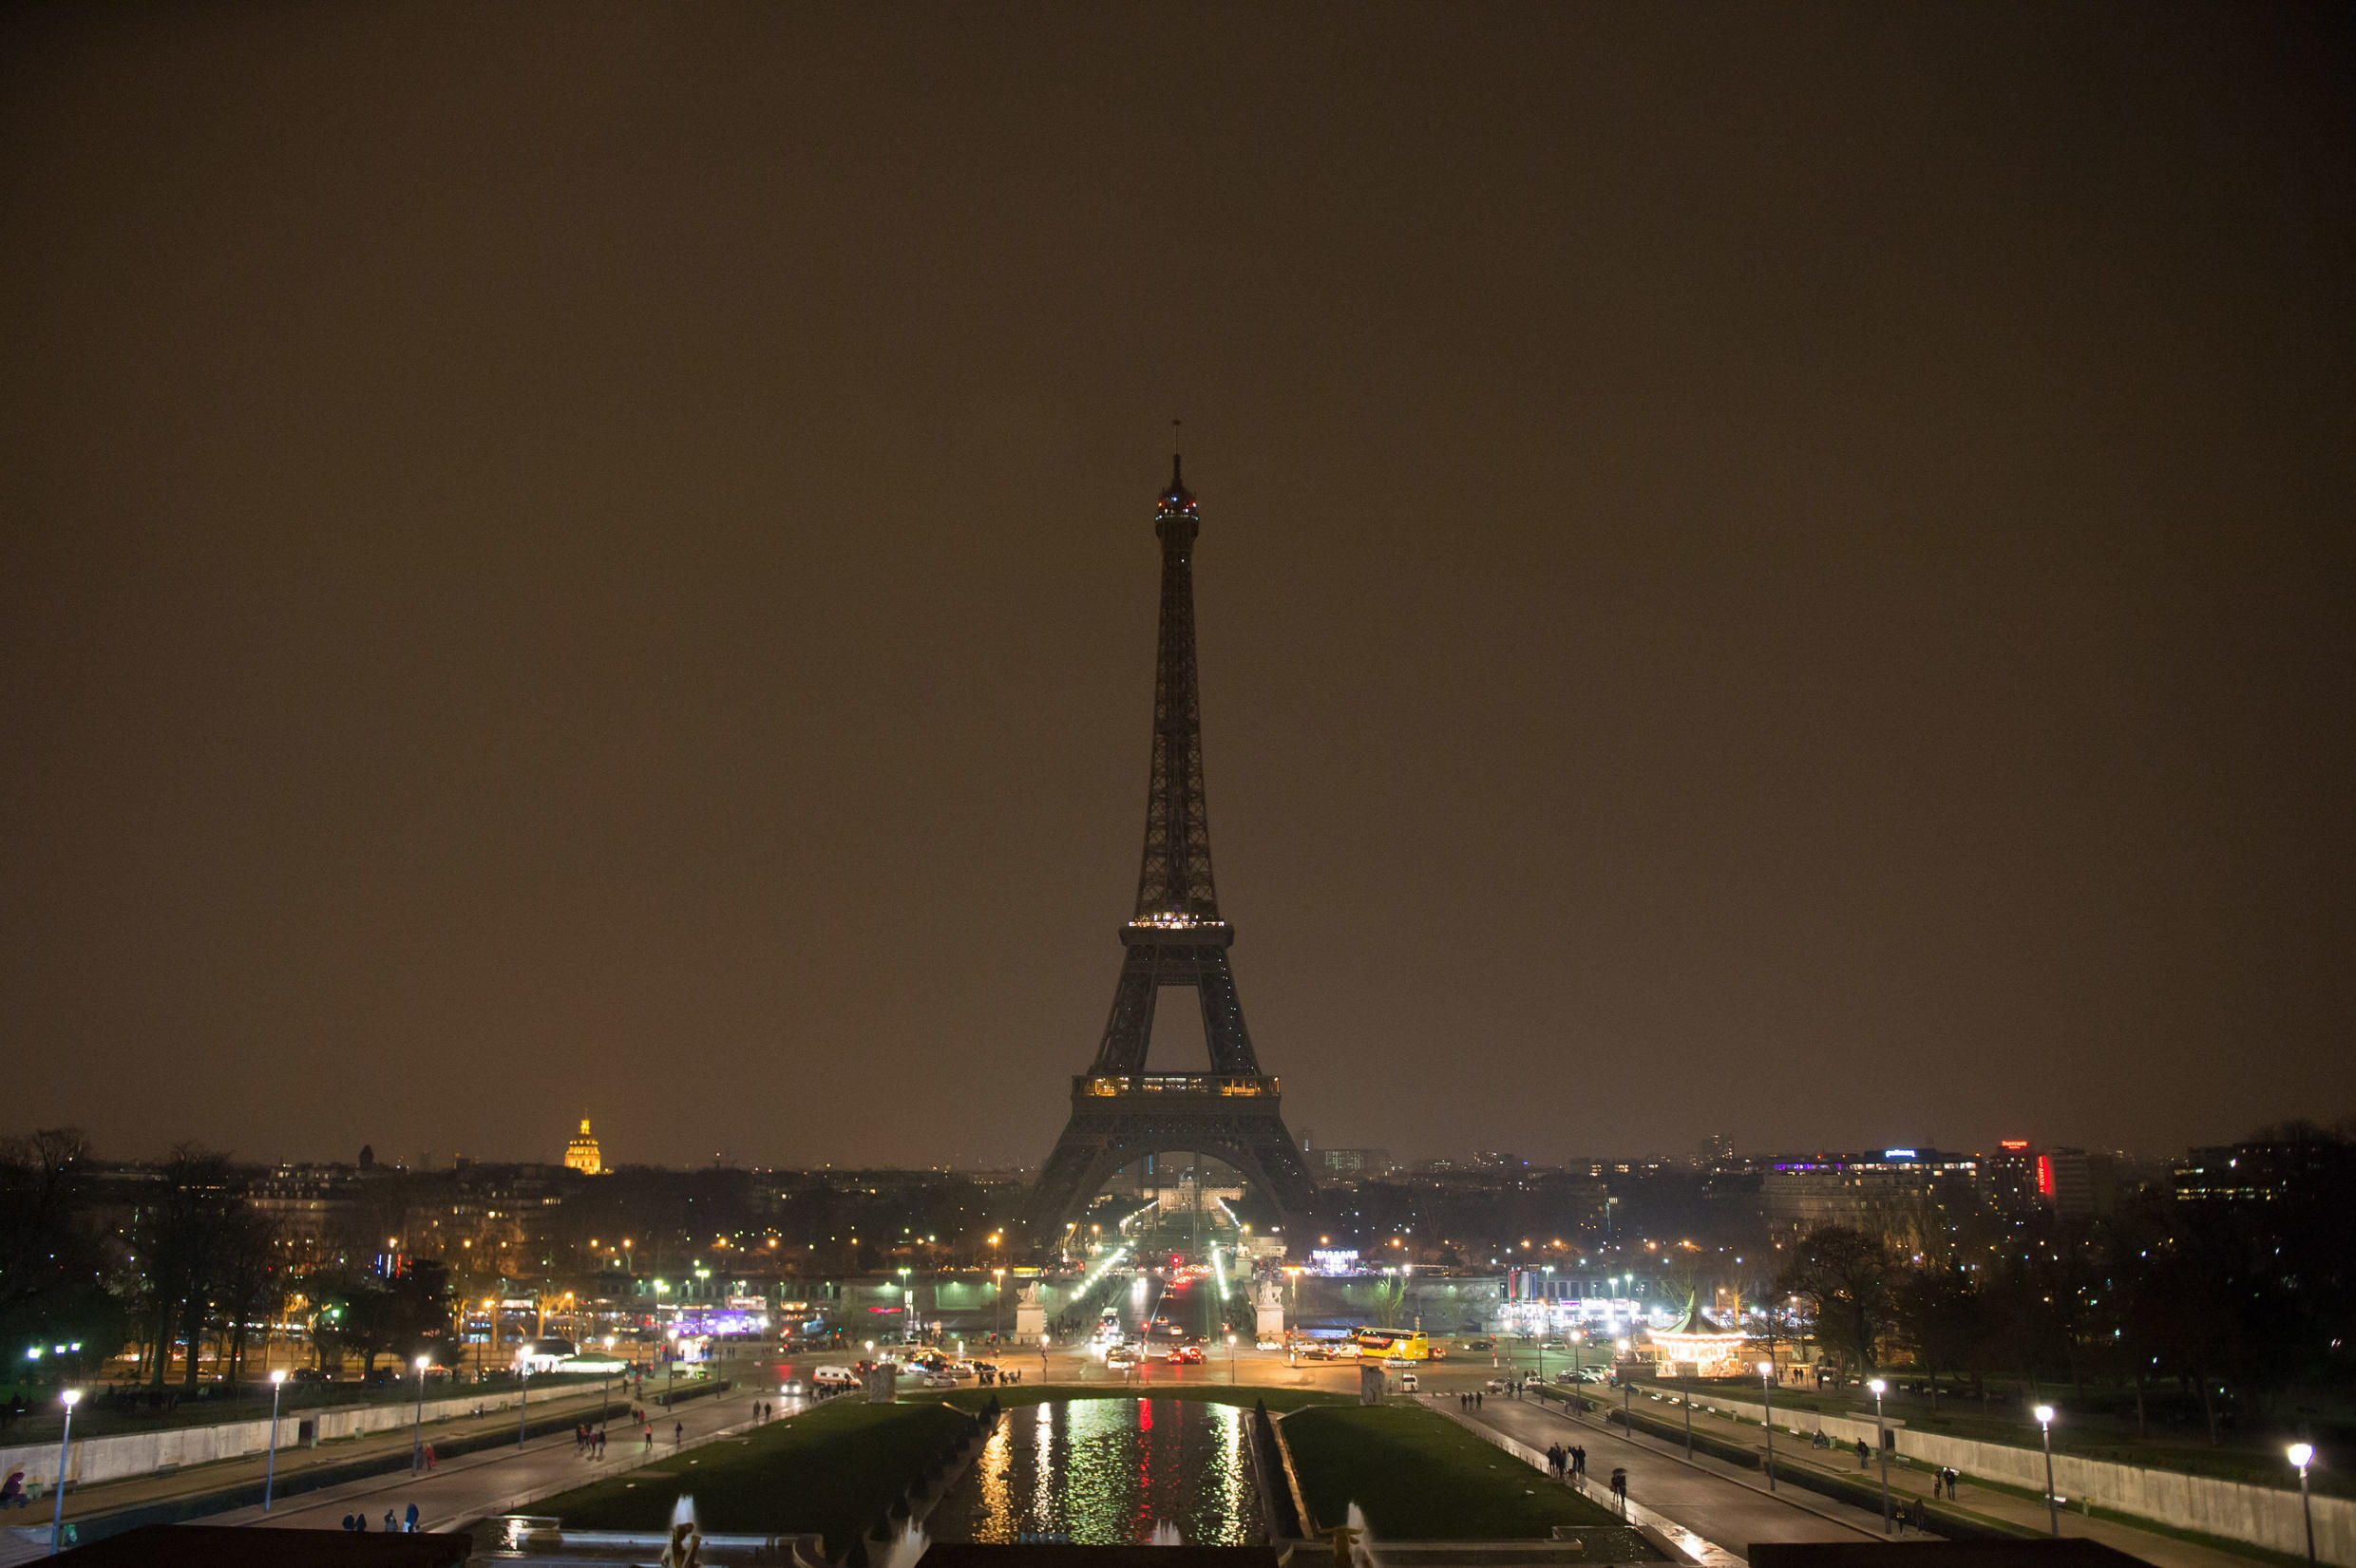 Monuments in Paris and worldwide will switch off lights tonight for Earth Hour.